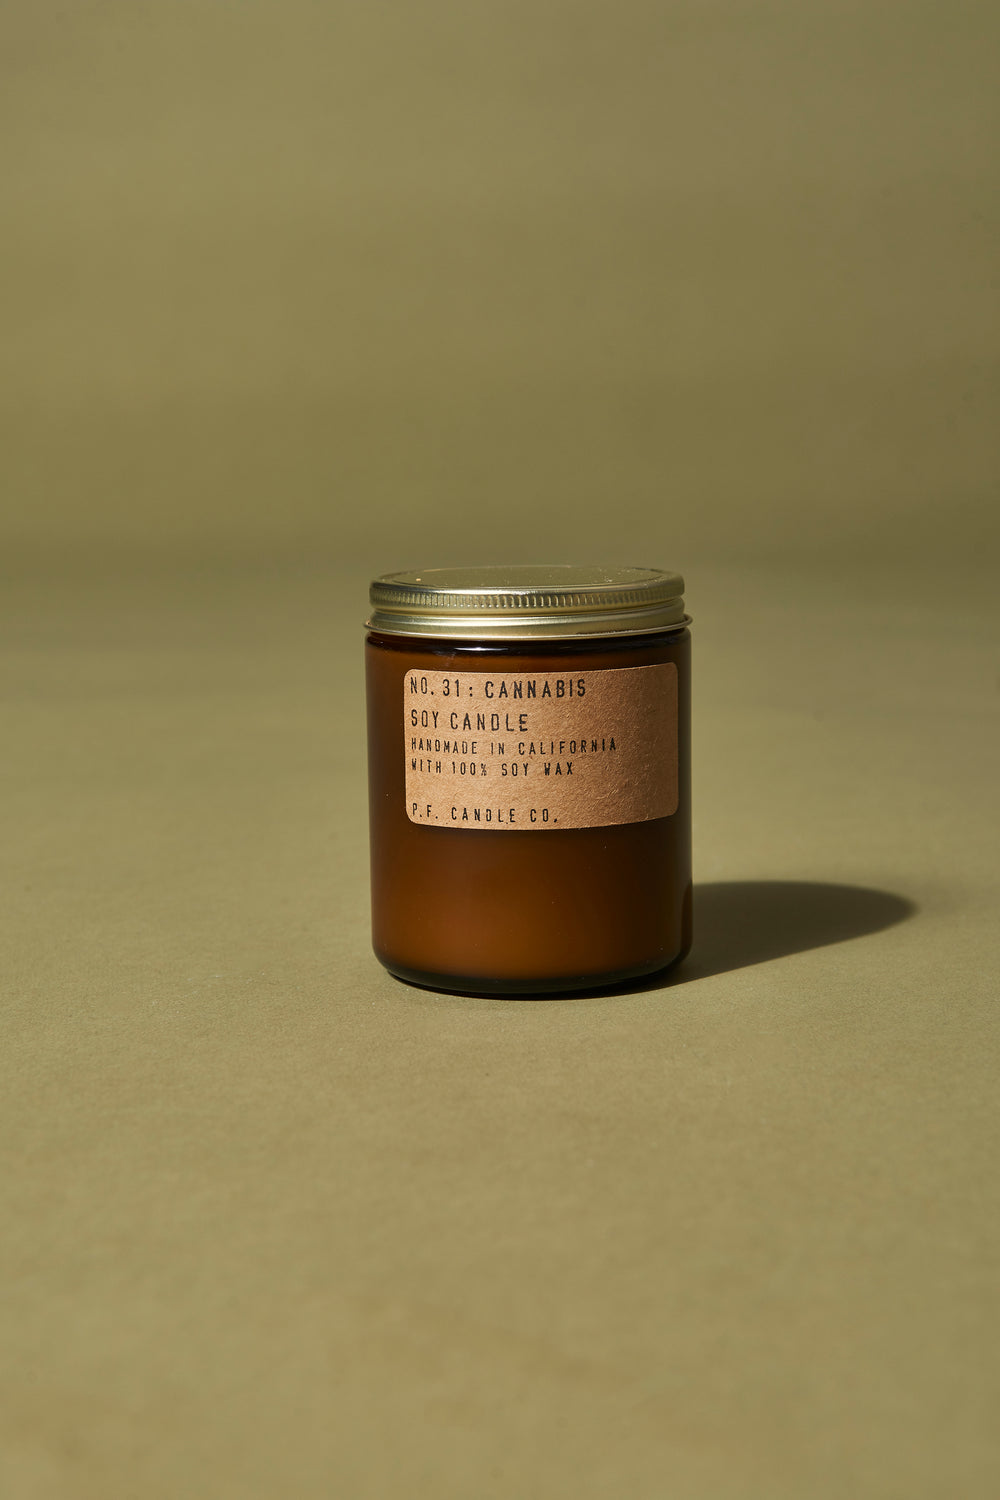 P.F. Candle Co. 7.2 oz Soy Candle - Whimsy & Row